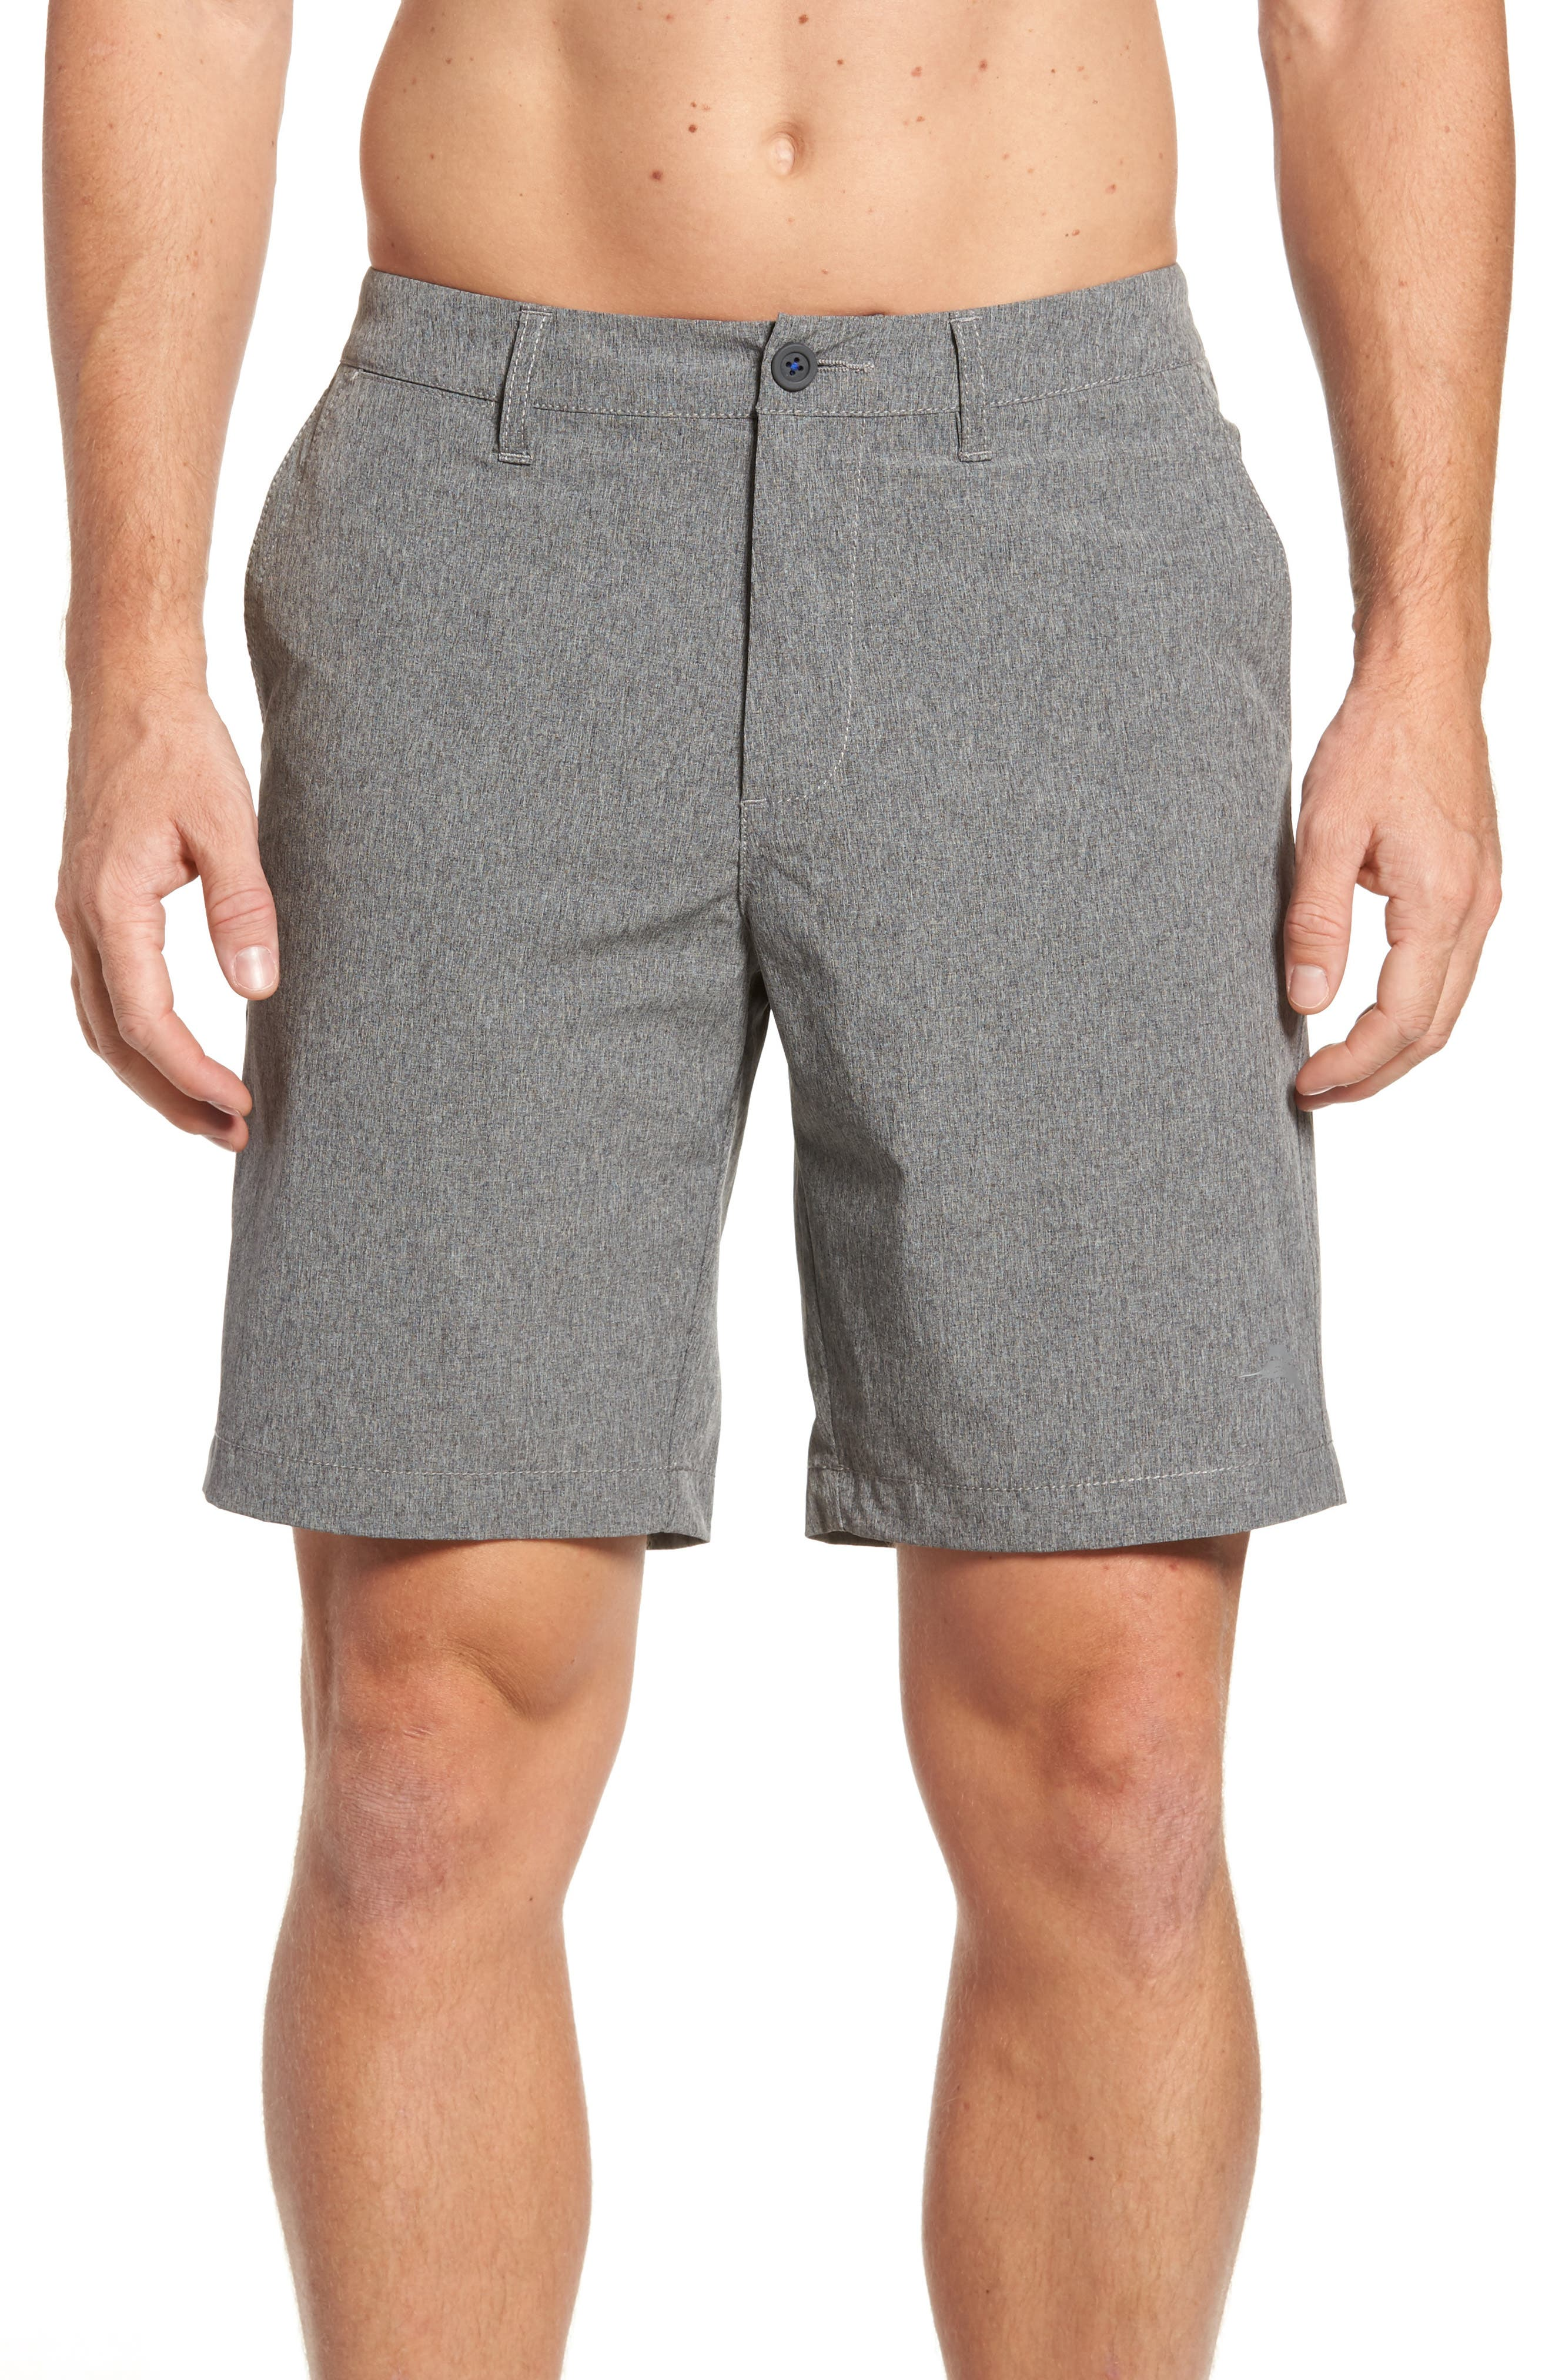 Cayman Isles Hybrid Swim Shorts,                             Alternate thumbnail 4, color,                             001